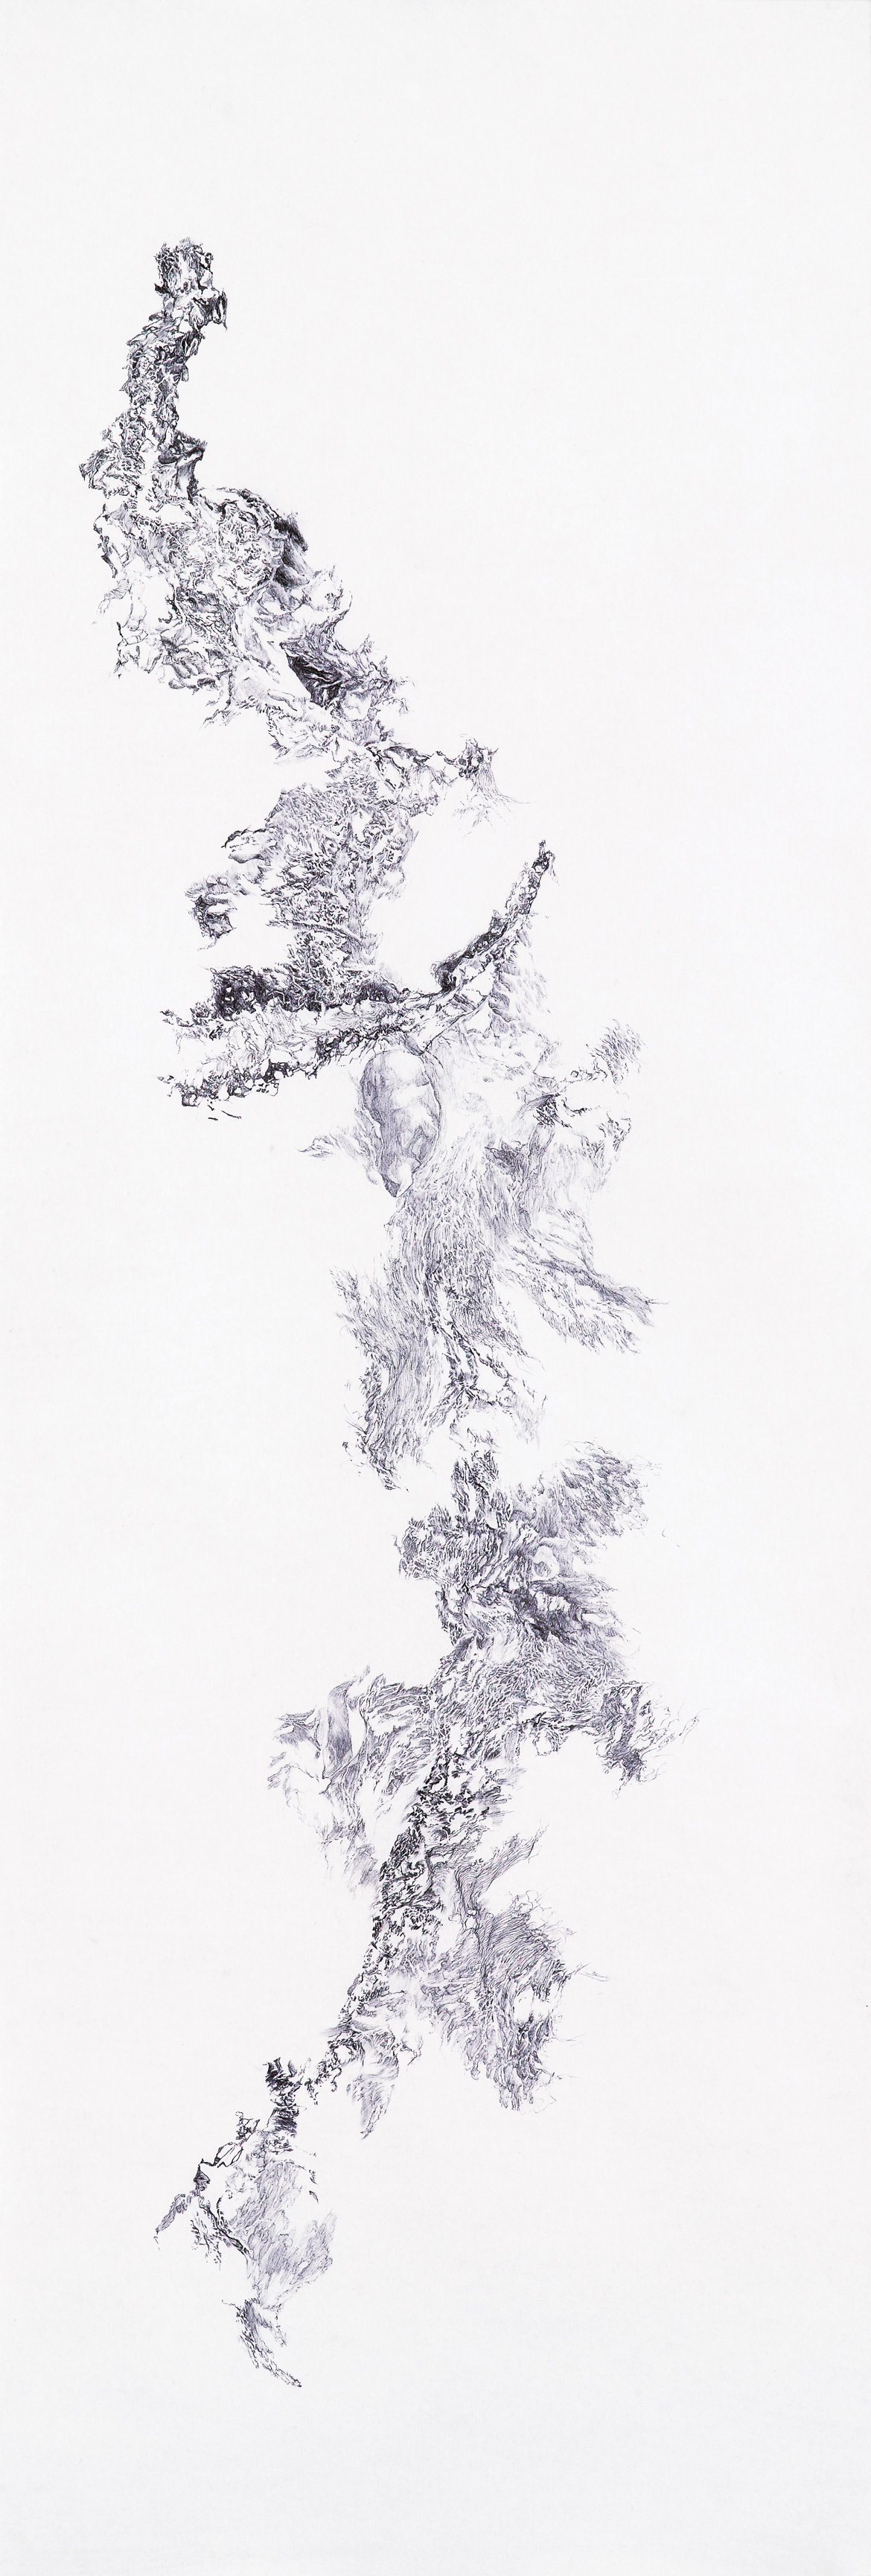 a moment of truth 6, ball pen on paper, 1 ft (w) x 3 ft (h), 2012